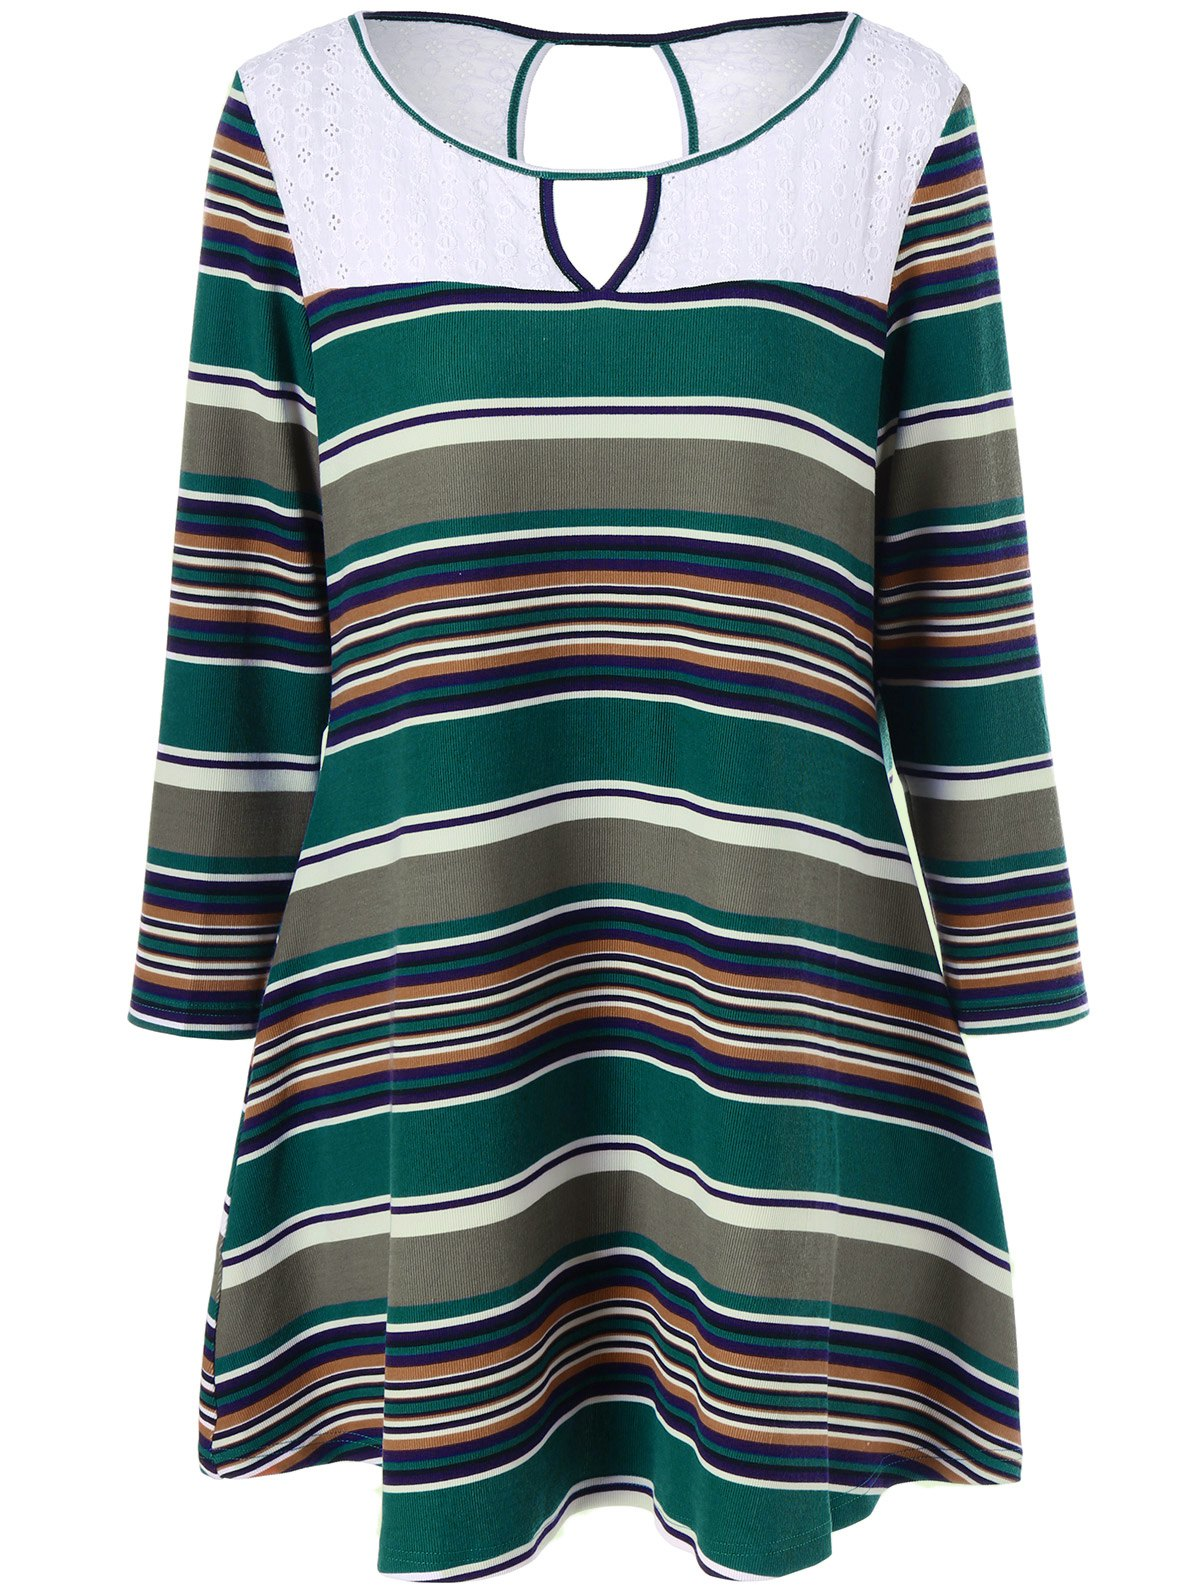 Plus Size Keyhole Striped Longline T-Shirt - COLORMIX 5XL